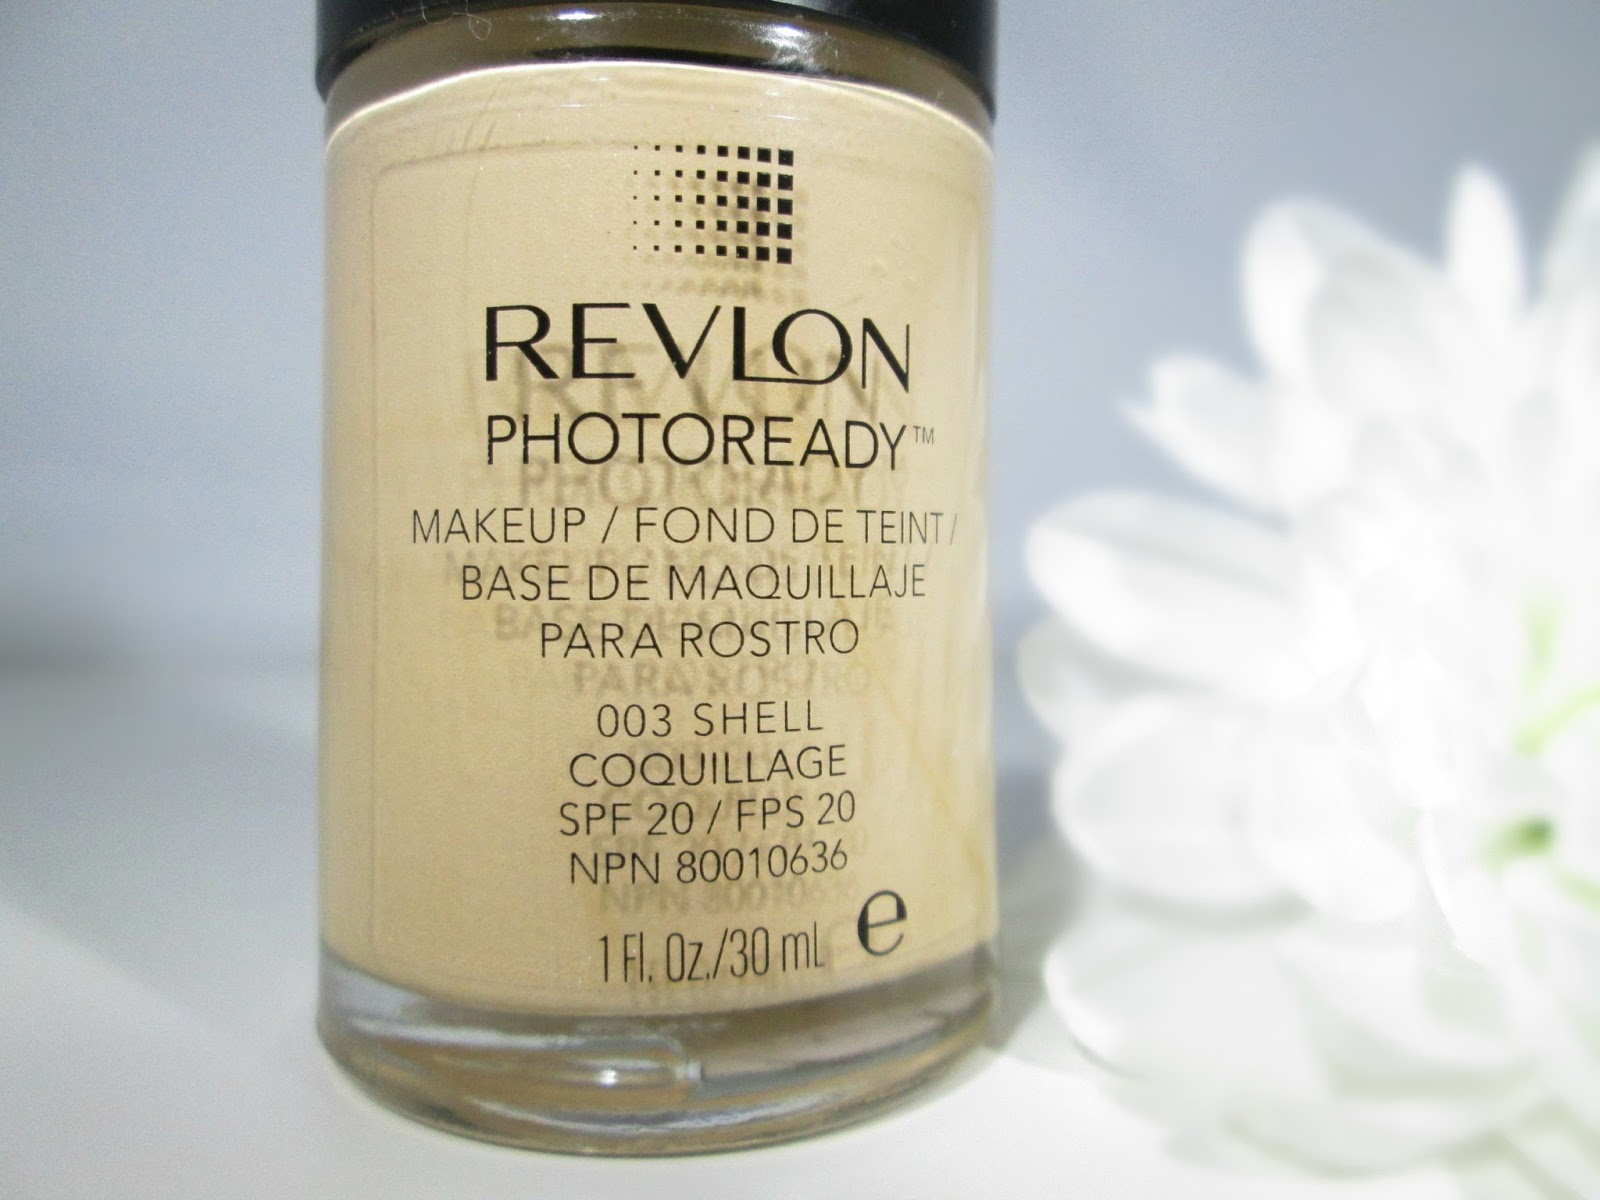 Revlon photoready foundation 003 Fashion Outlets of Chicago - Outlet mall in Illinois